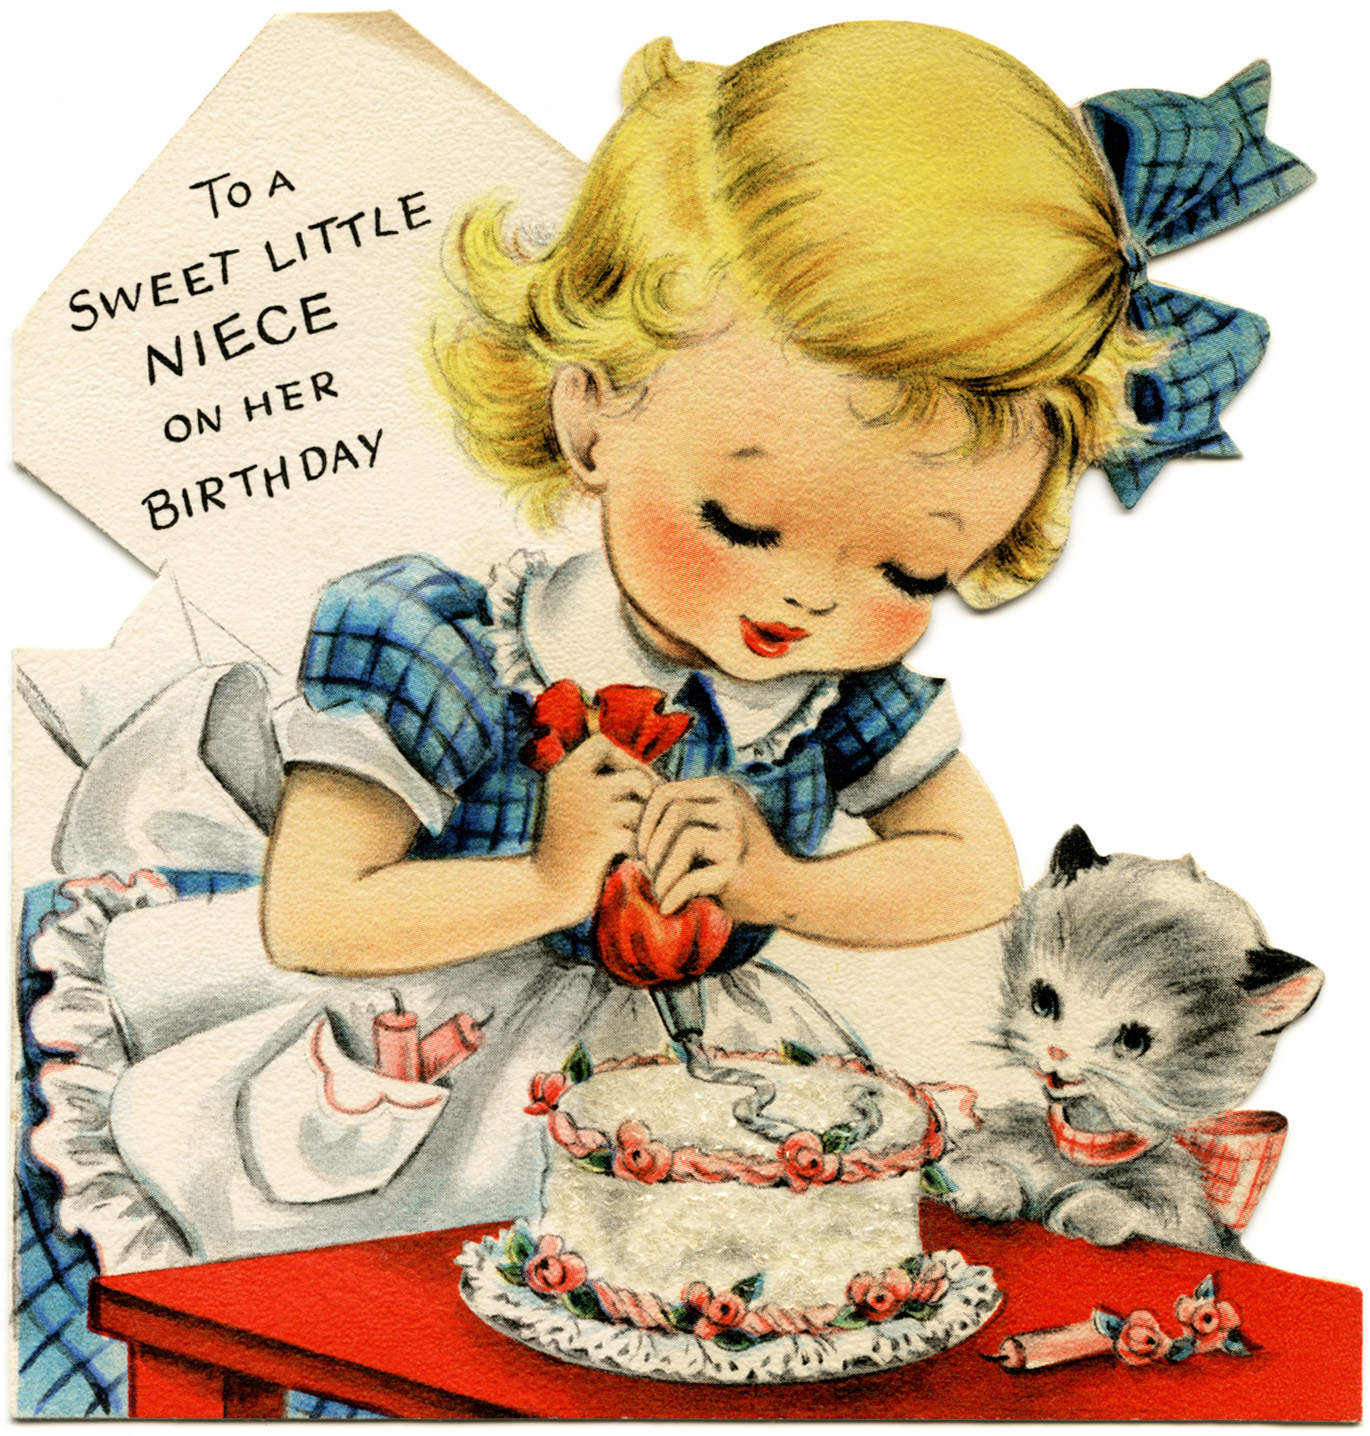 Vintage birthday cards for girls old design shop blog free vintage clip art girl decorating cake kitten watching birthday greeting card m4hsunfo